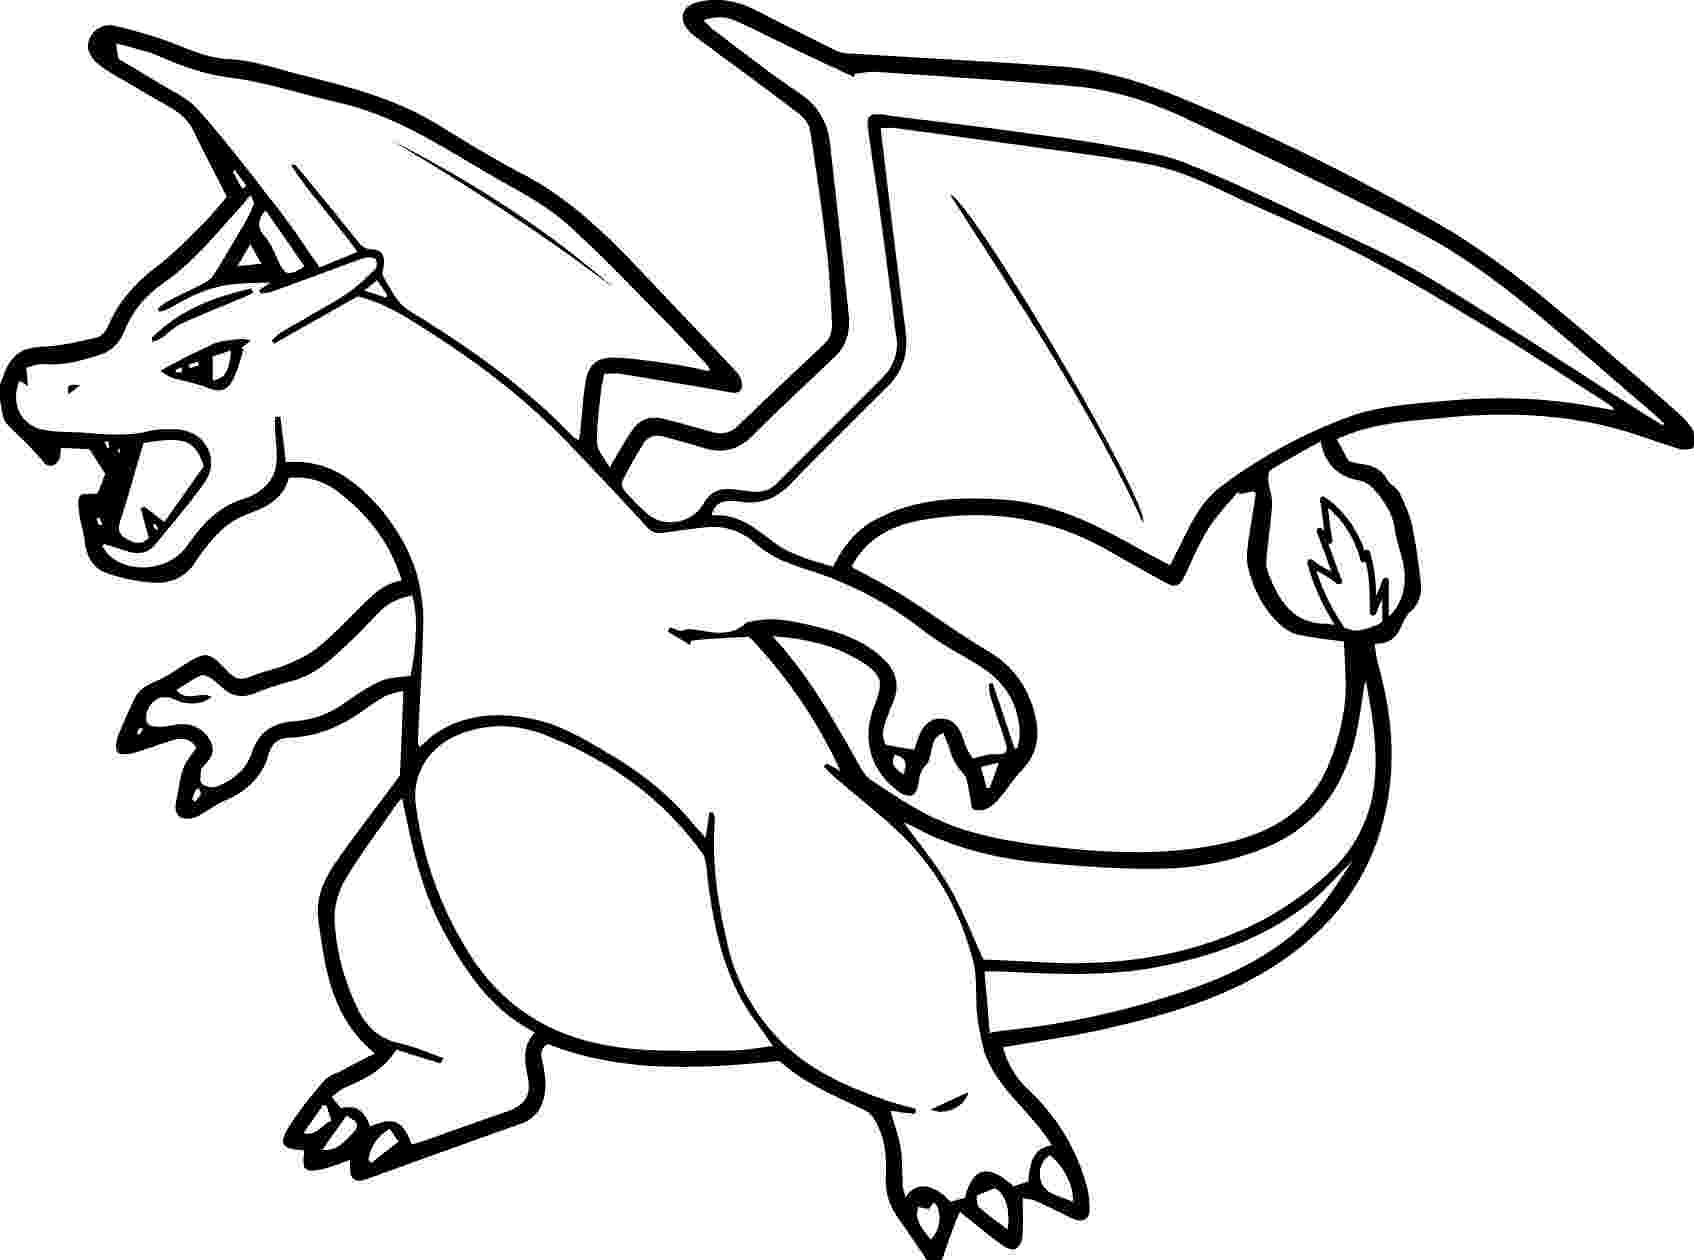 pokemon charizard coloring pages mega charizard x coloring page coloring home coloring charizard pages pokemon